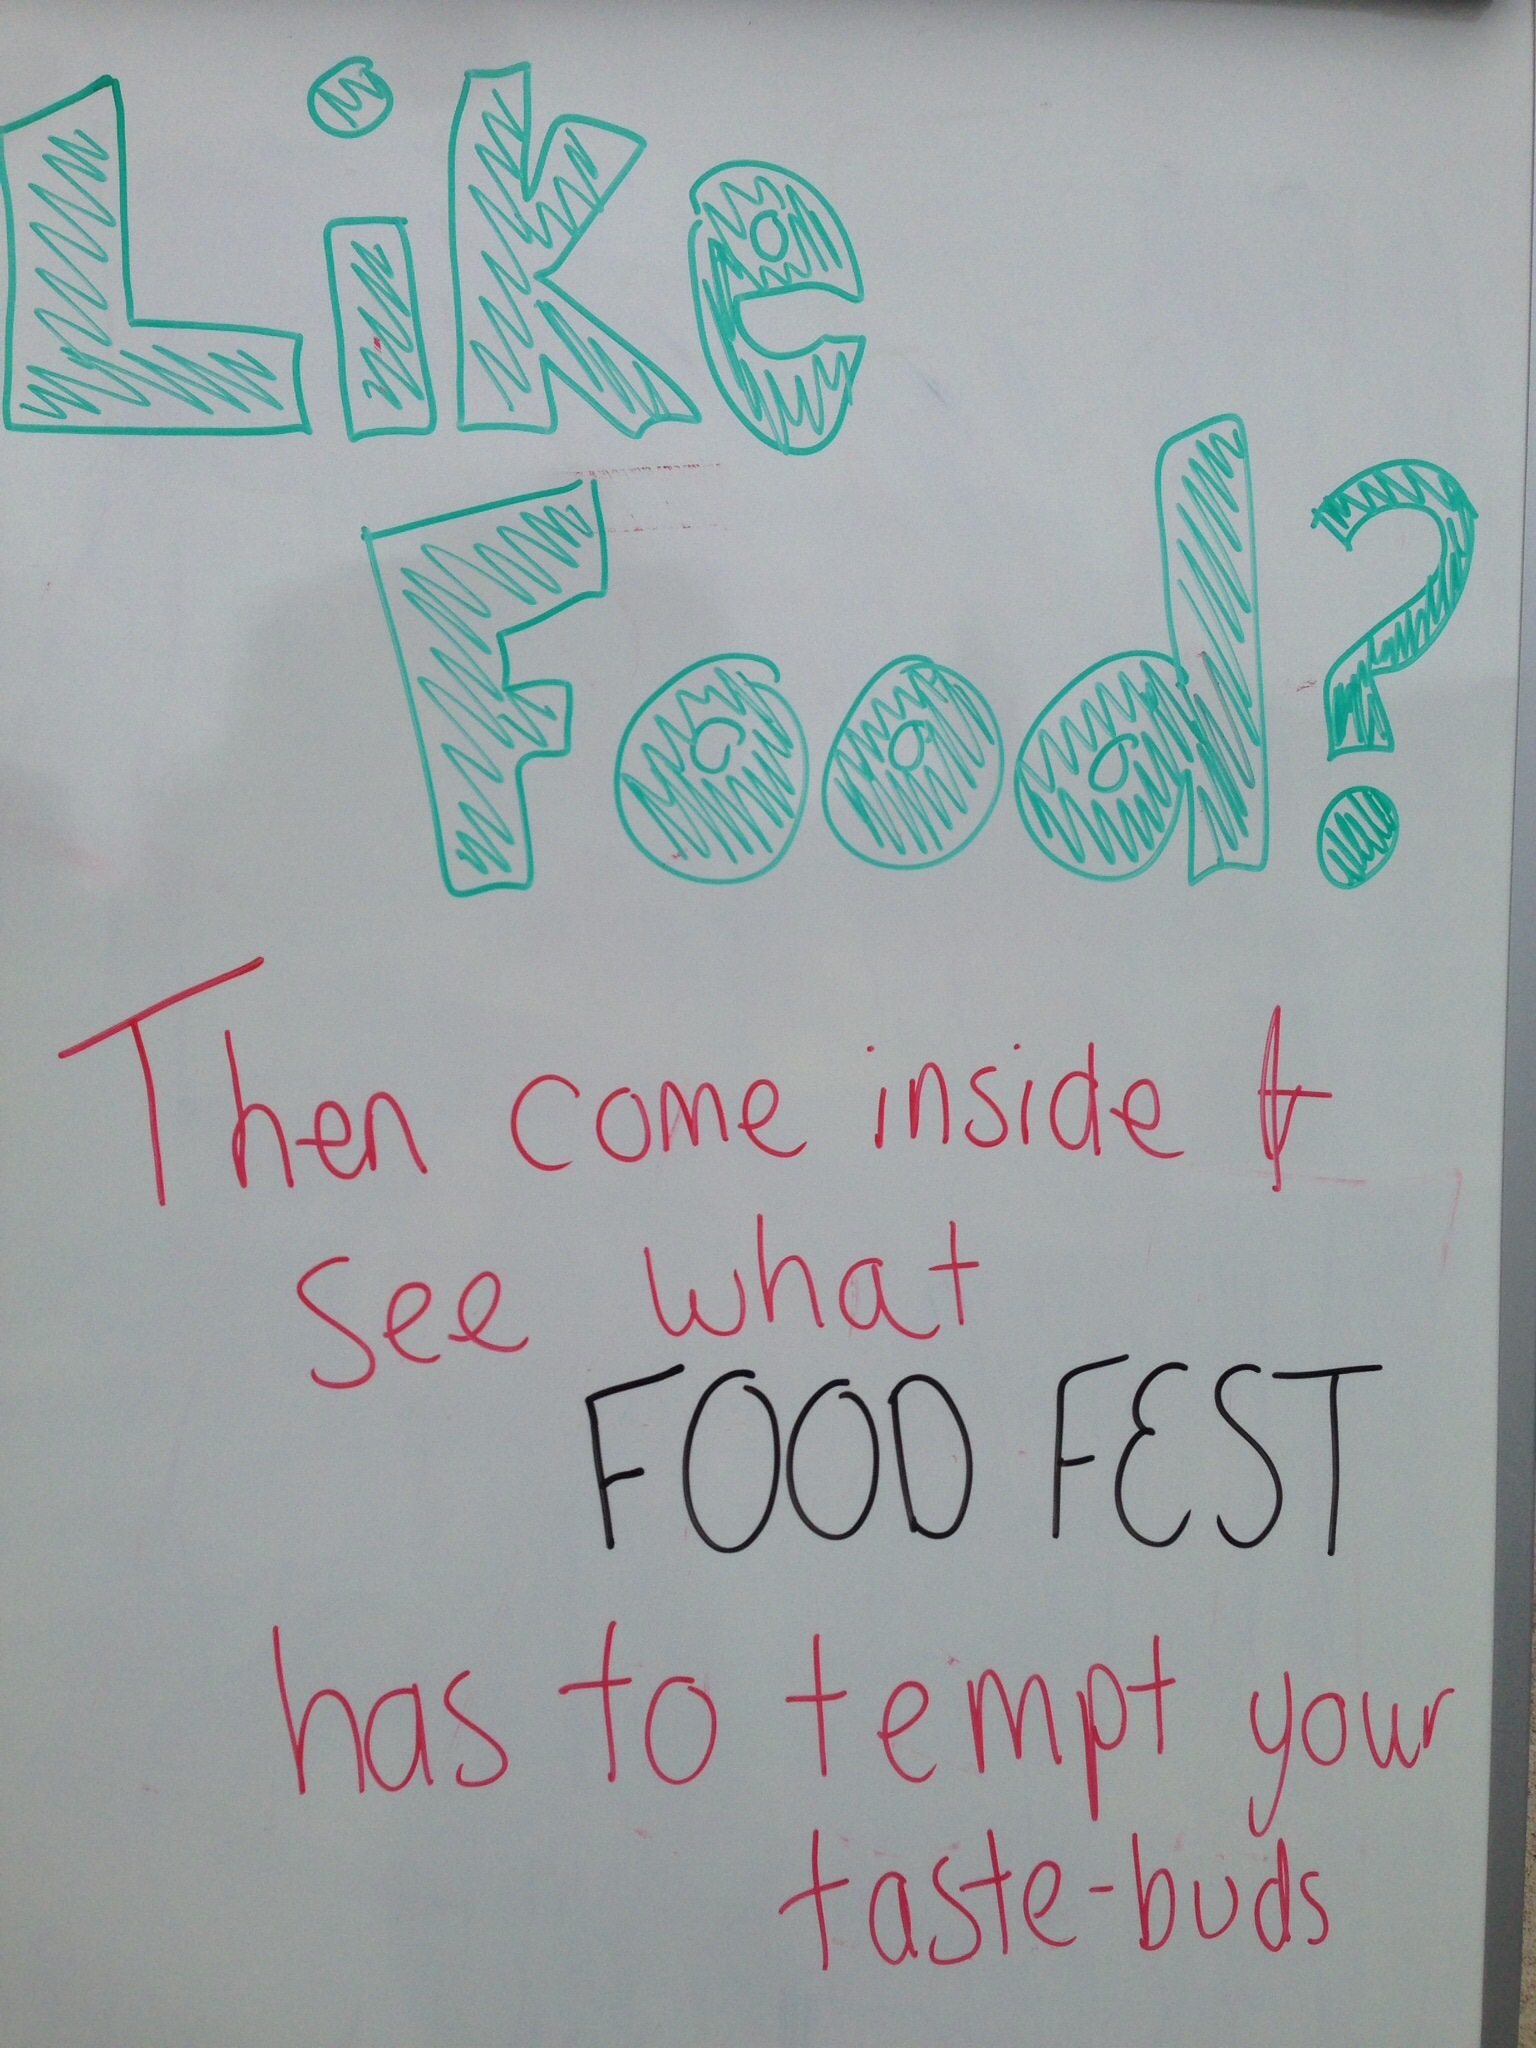 Chester Students Food Fest in the Small Hall!